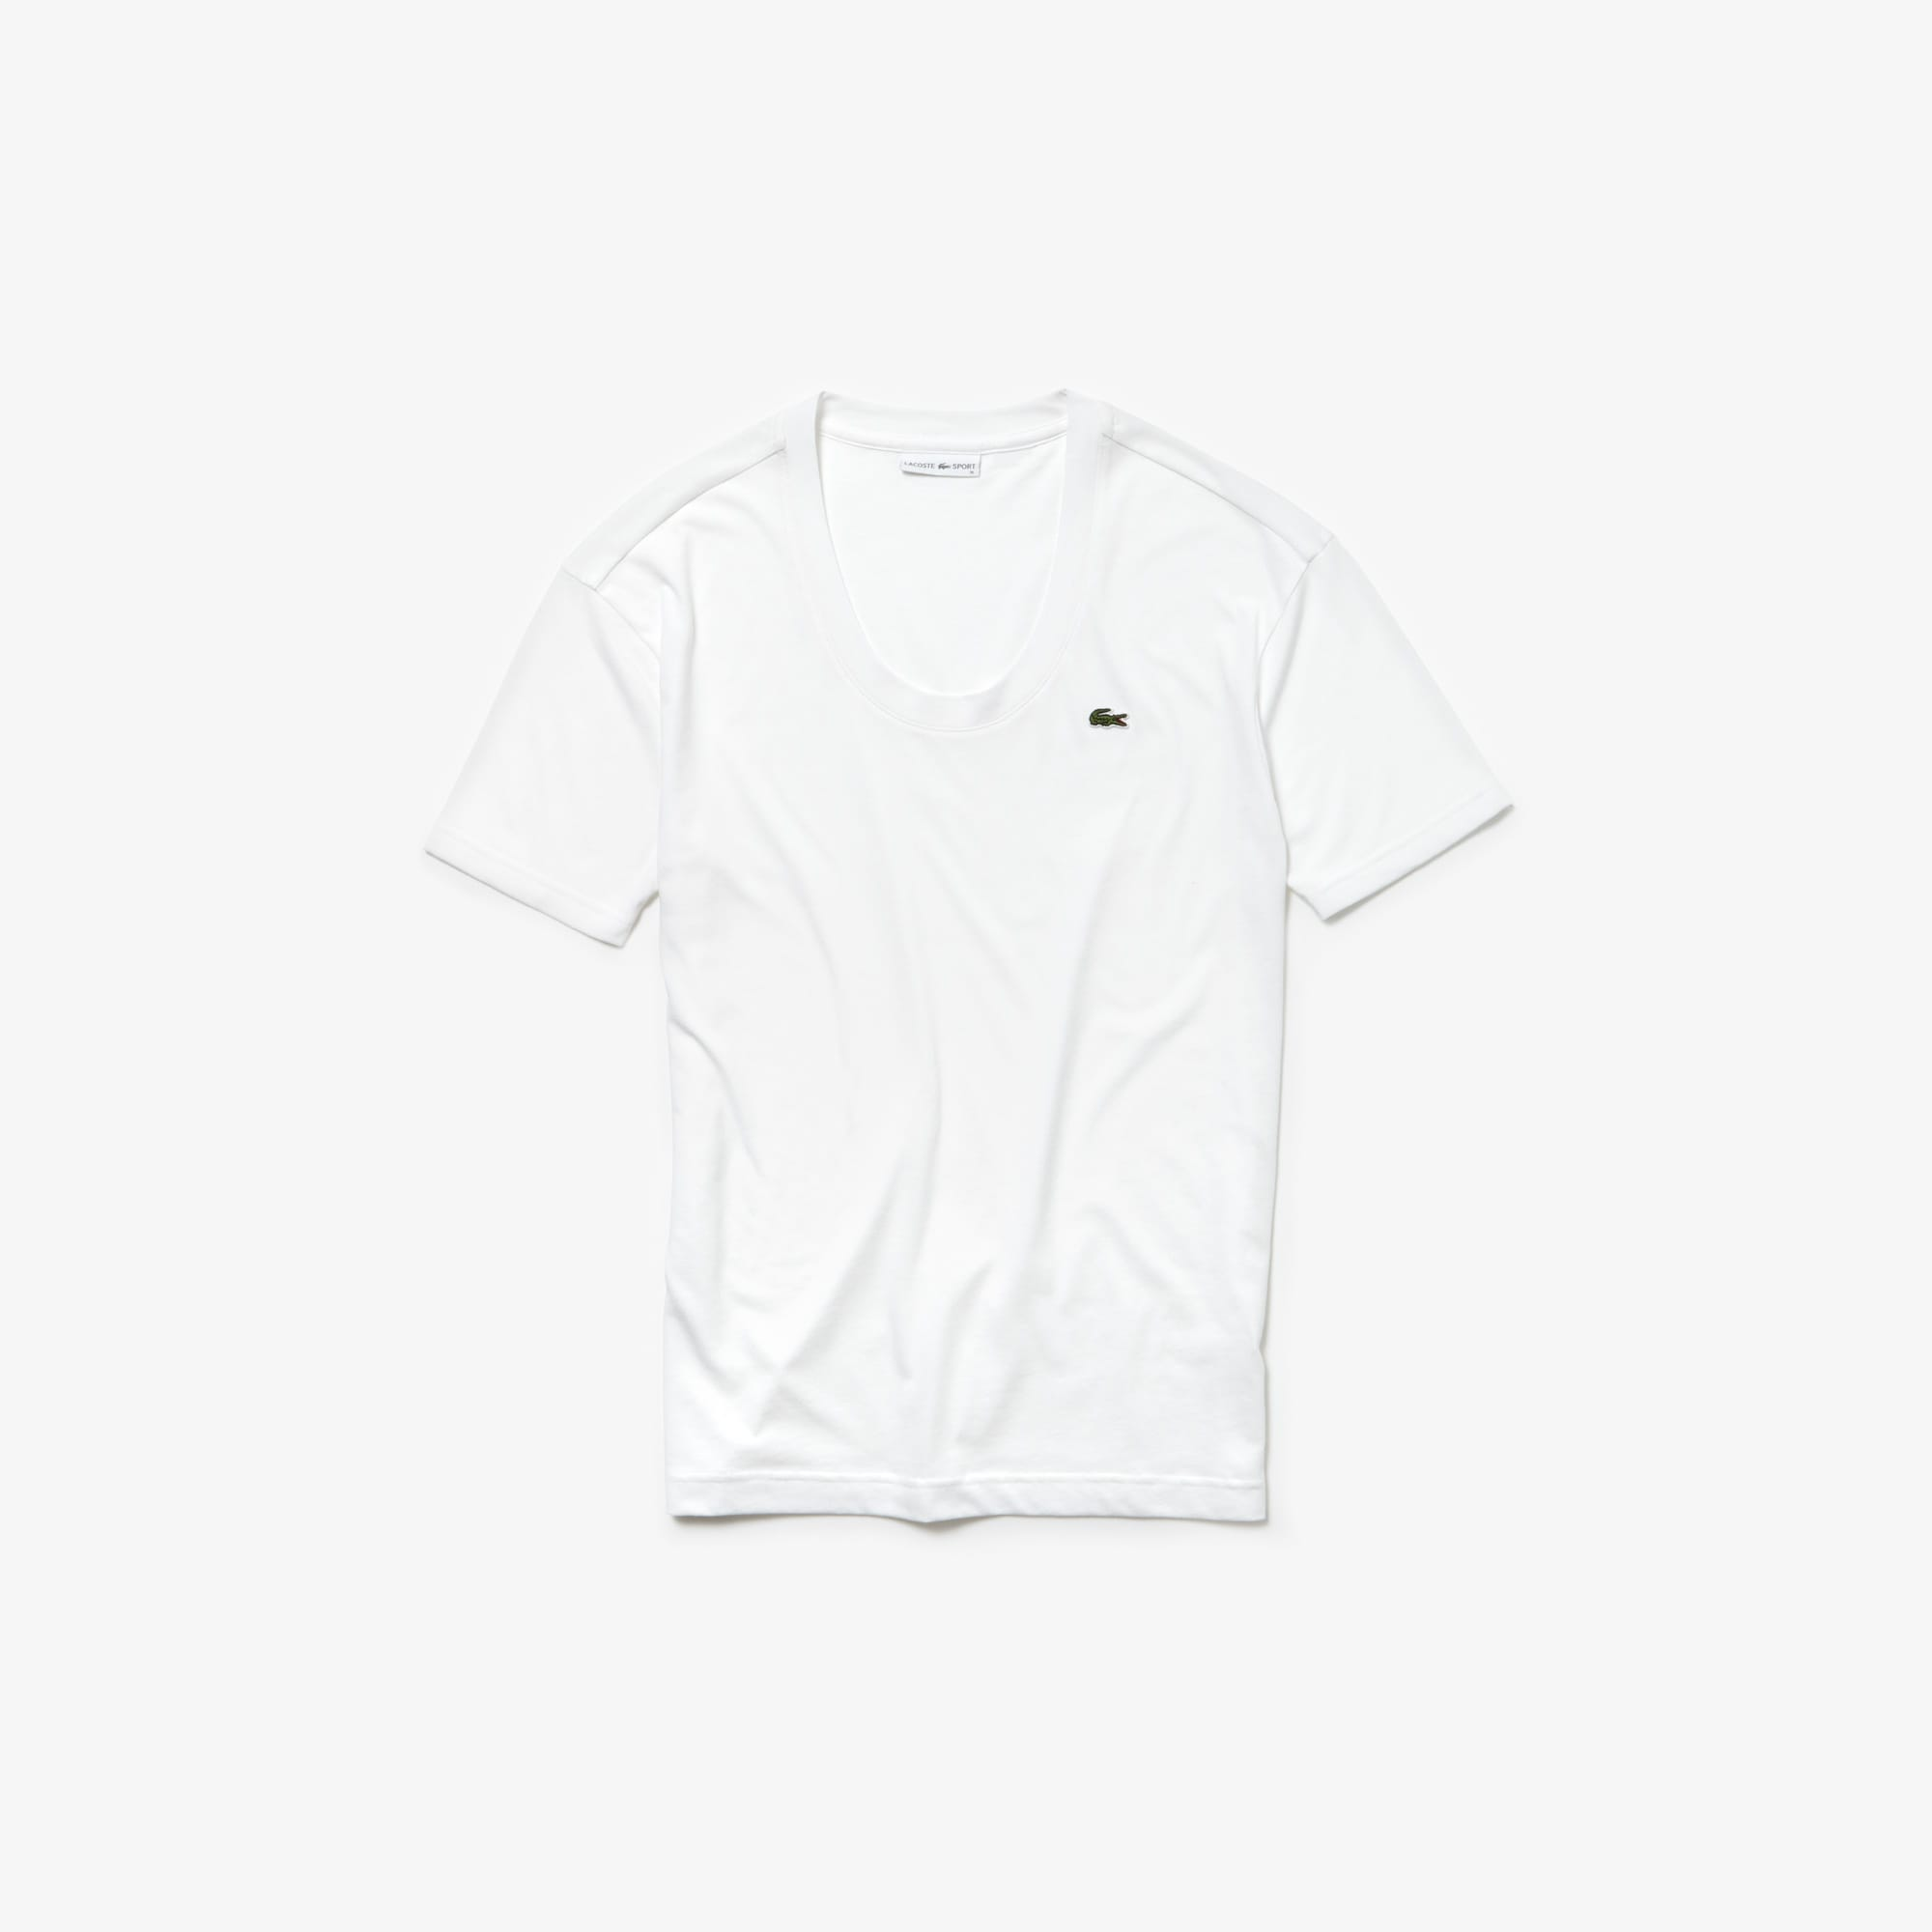 Women's Lacoste SPORT U-neck Flowing Jersey Tennis T-shirt